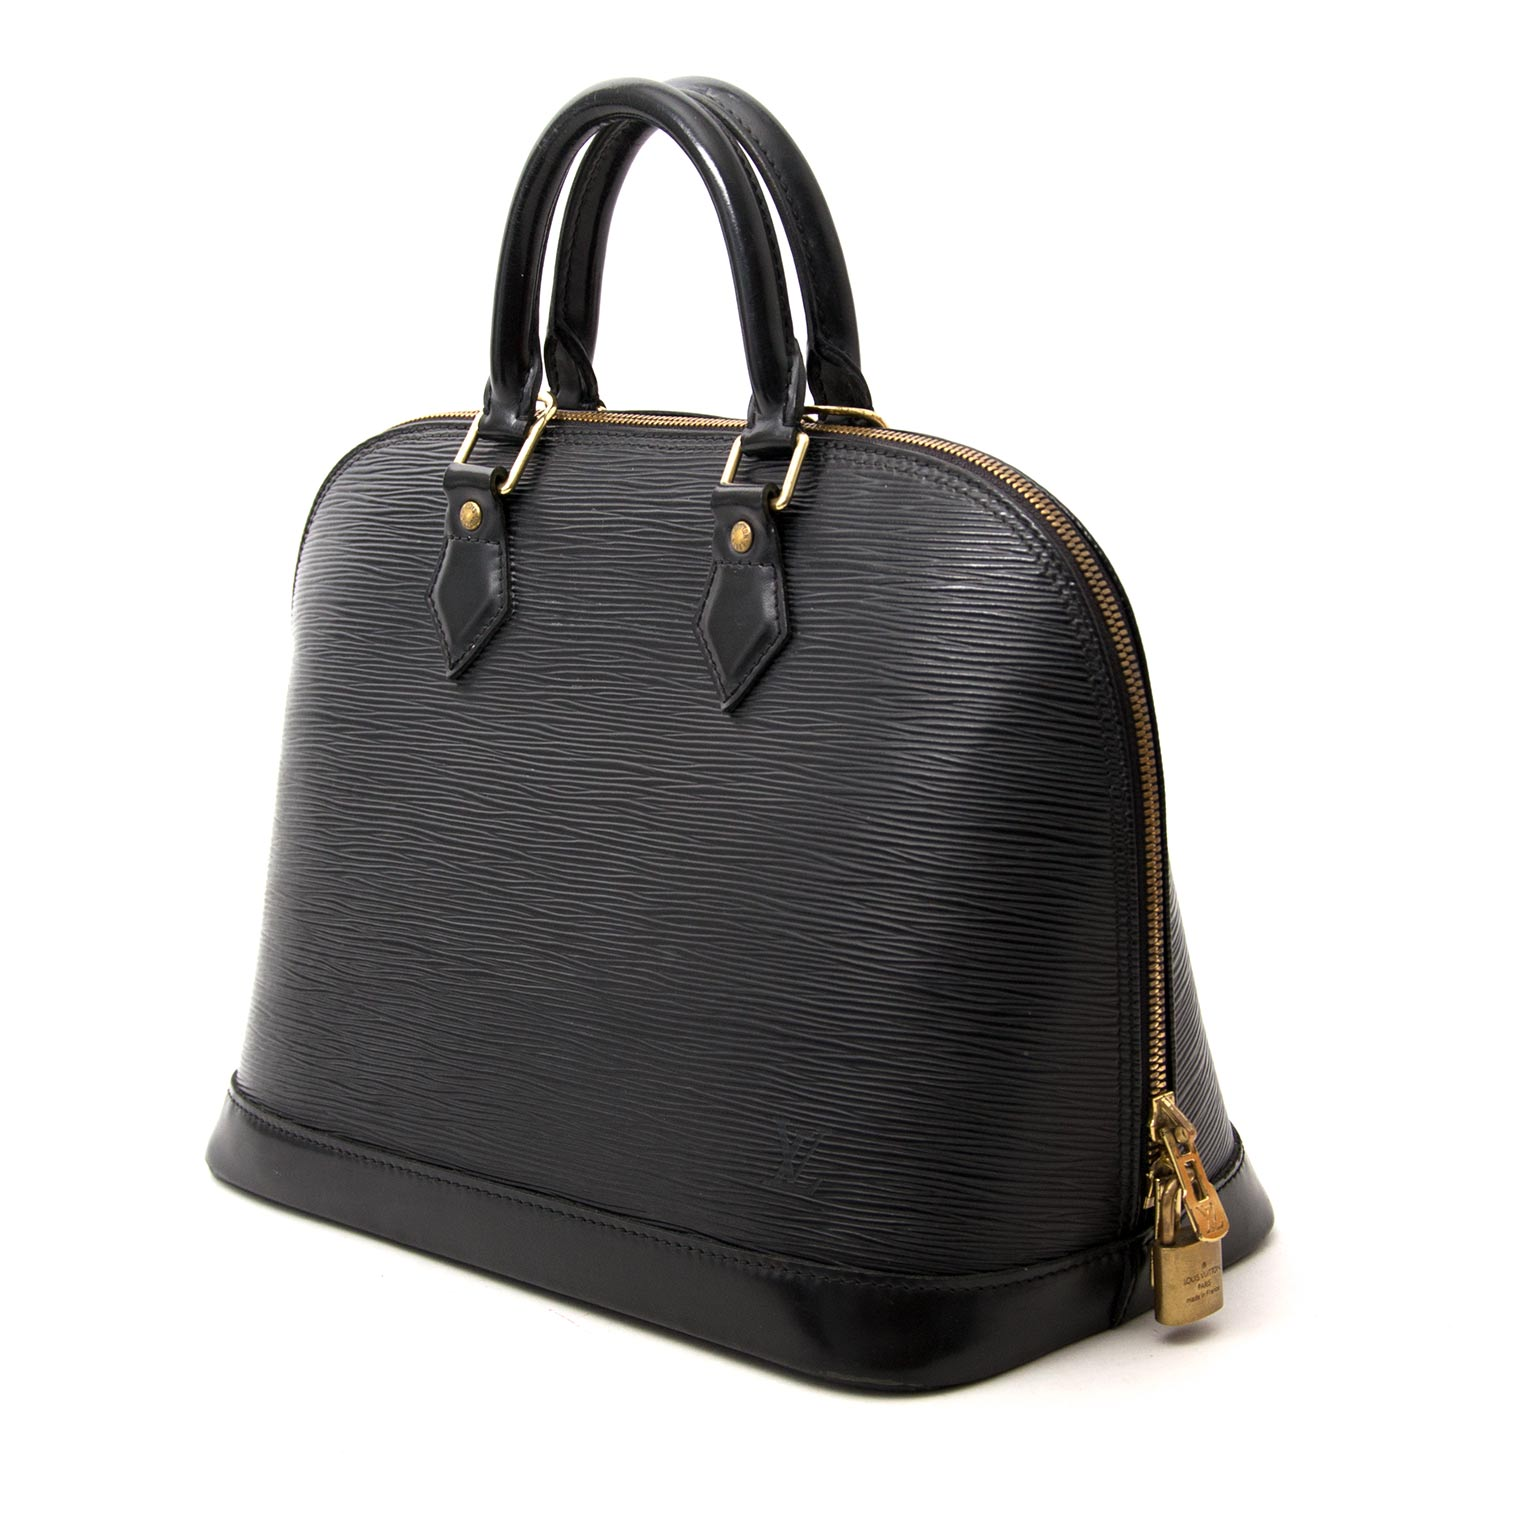 6c9aded02d6a ... Louis Vuitton Alma Black Epi now online at labellov.com for the best  price